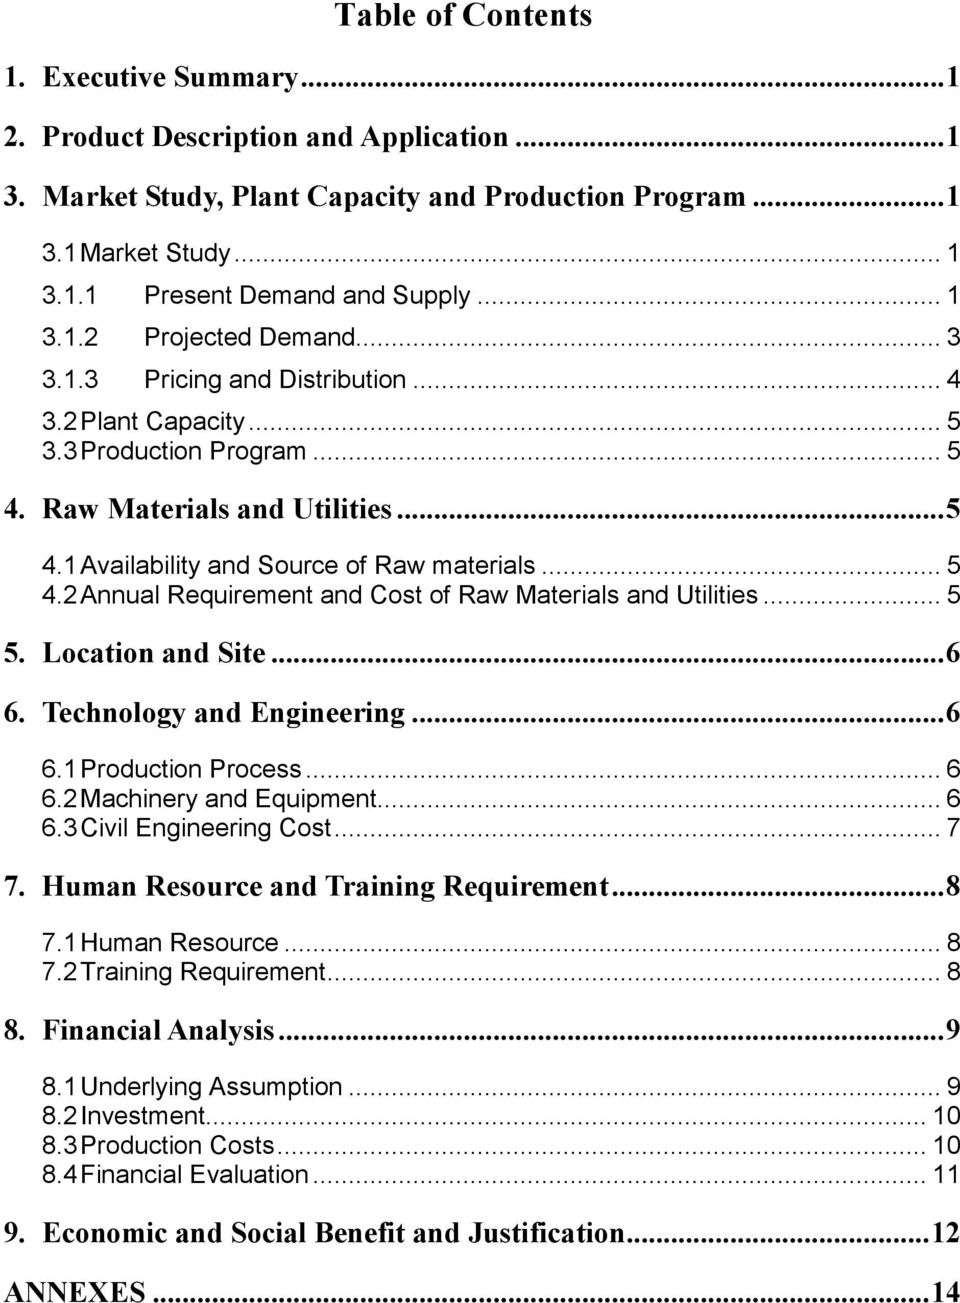 .. 5 4.2 Annual Requirement and Cost of Raw Materials and Utilities... 5 5. Location and Site...6 6. Technology and Engineering...6 6.1 Production Process... 6 6.2 Machinery and Equipment... 6 6.3 Civil Engineering Cost.